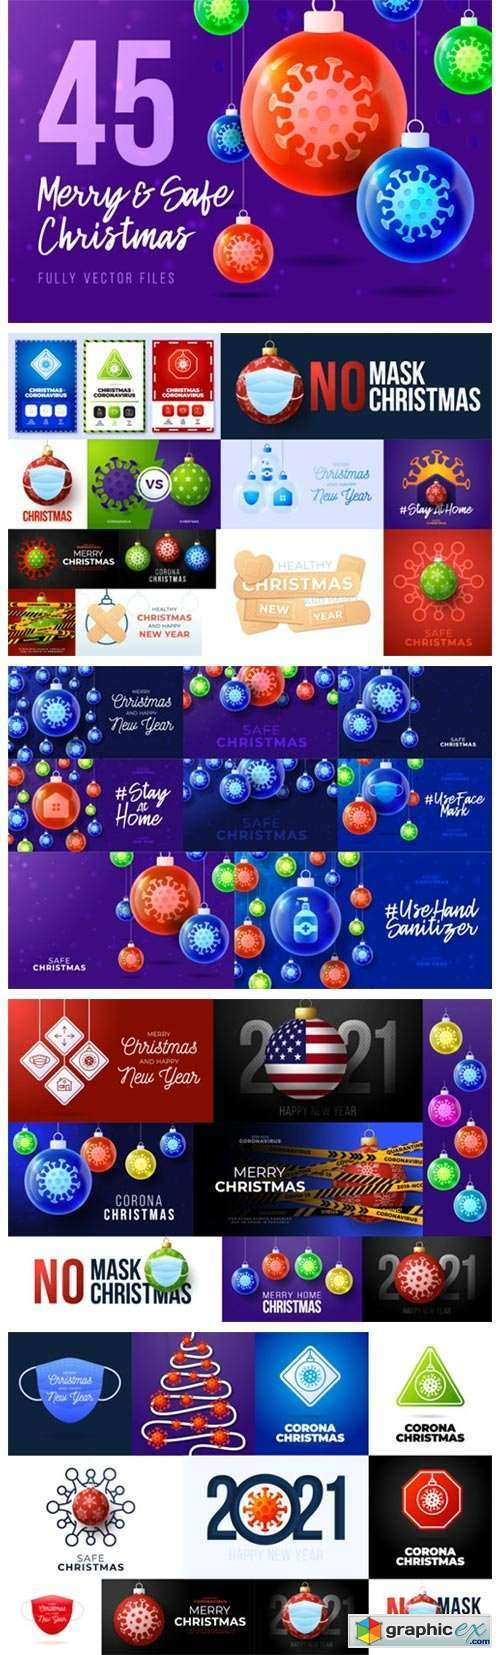 45 Merry and Safe Christmas Banners